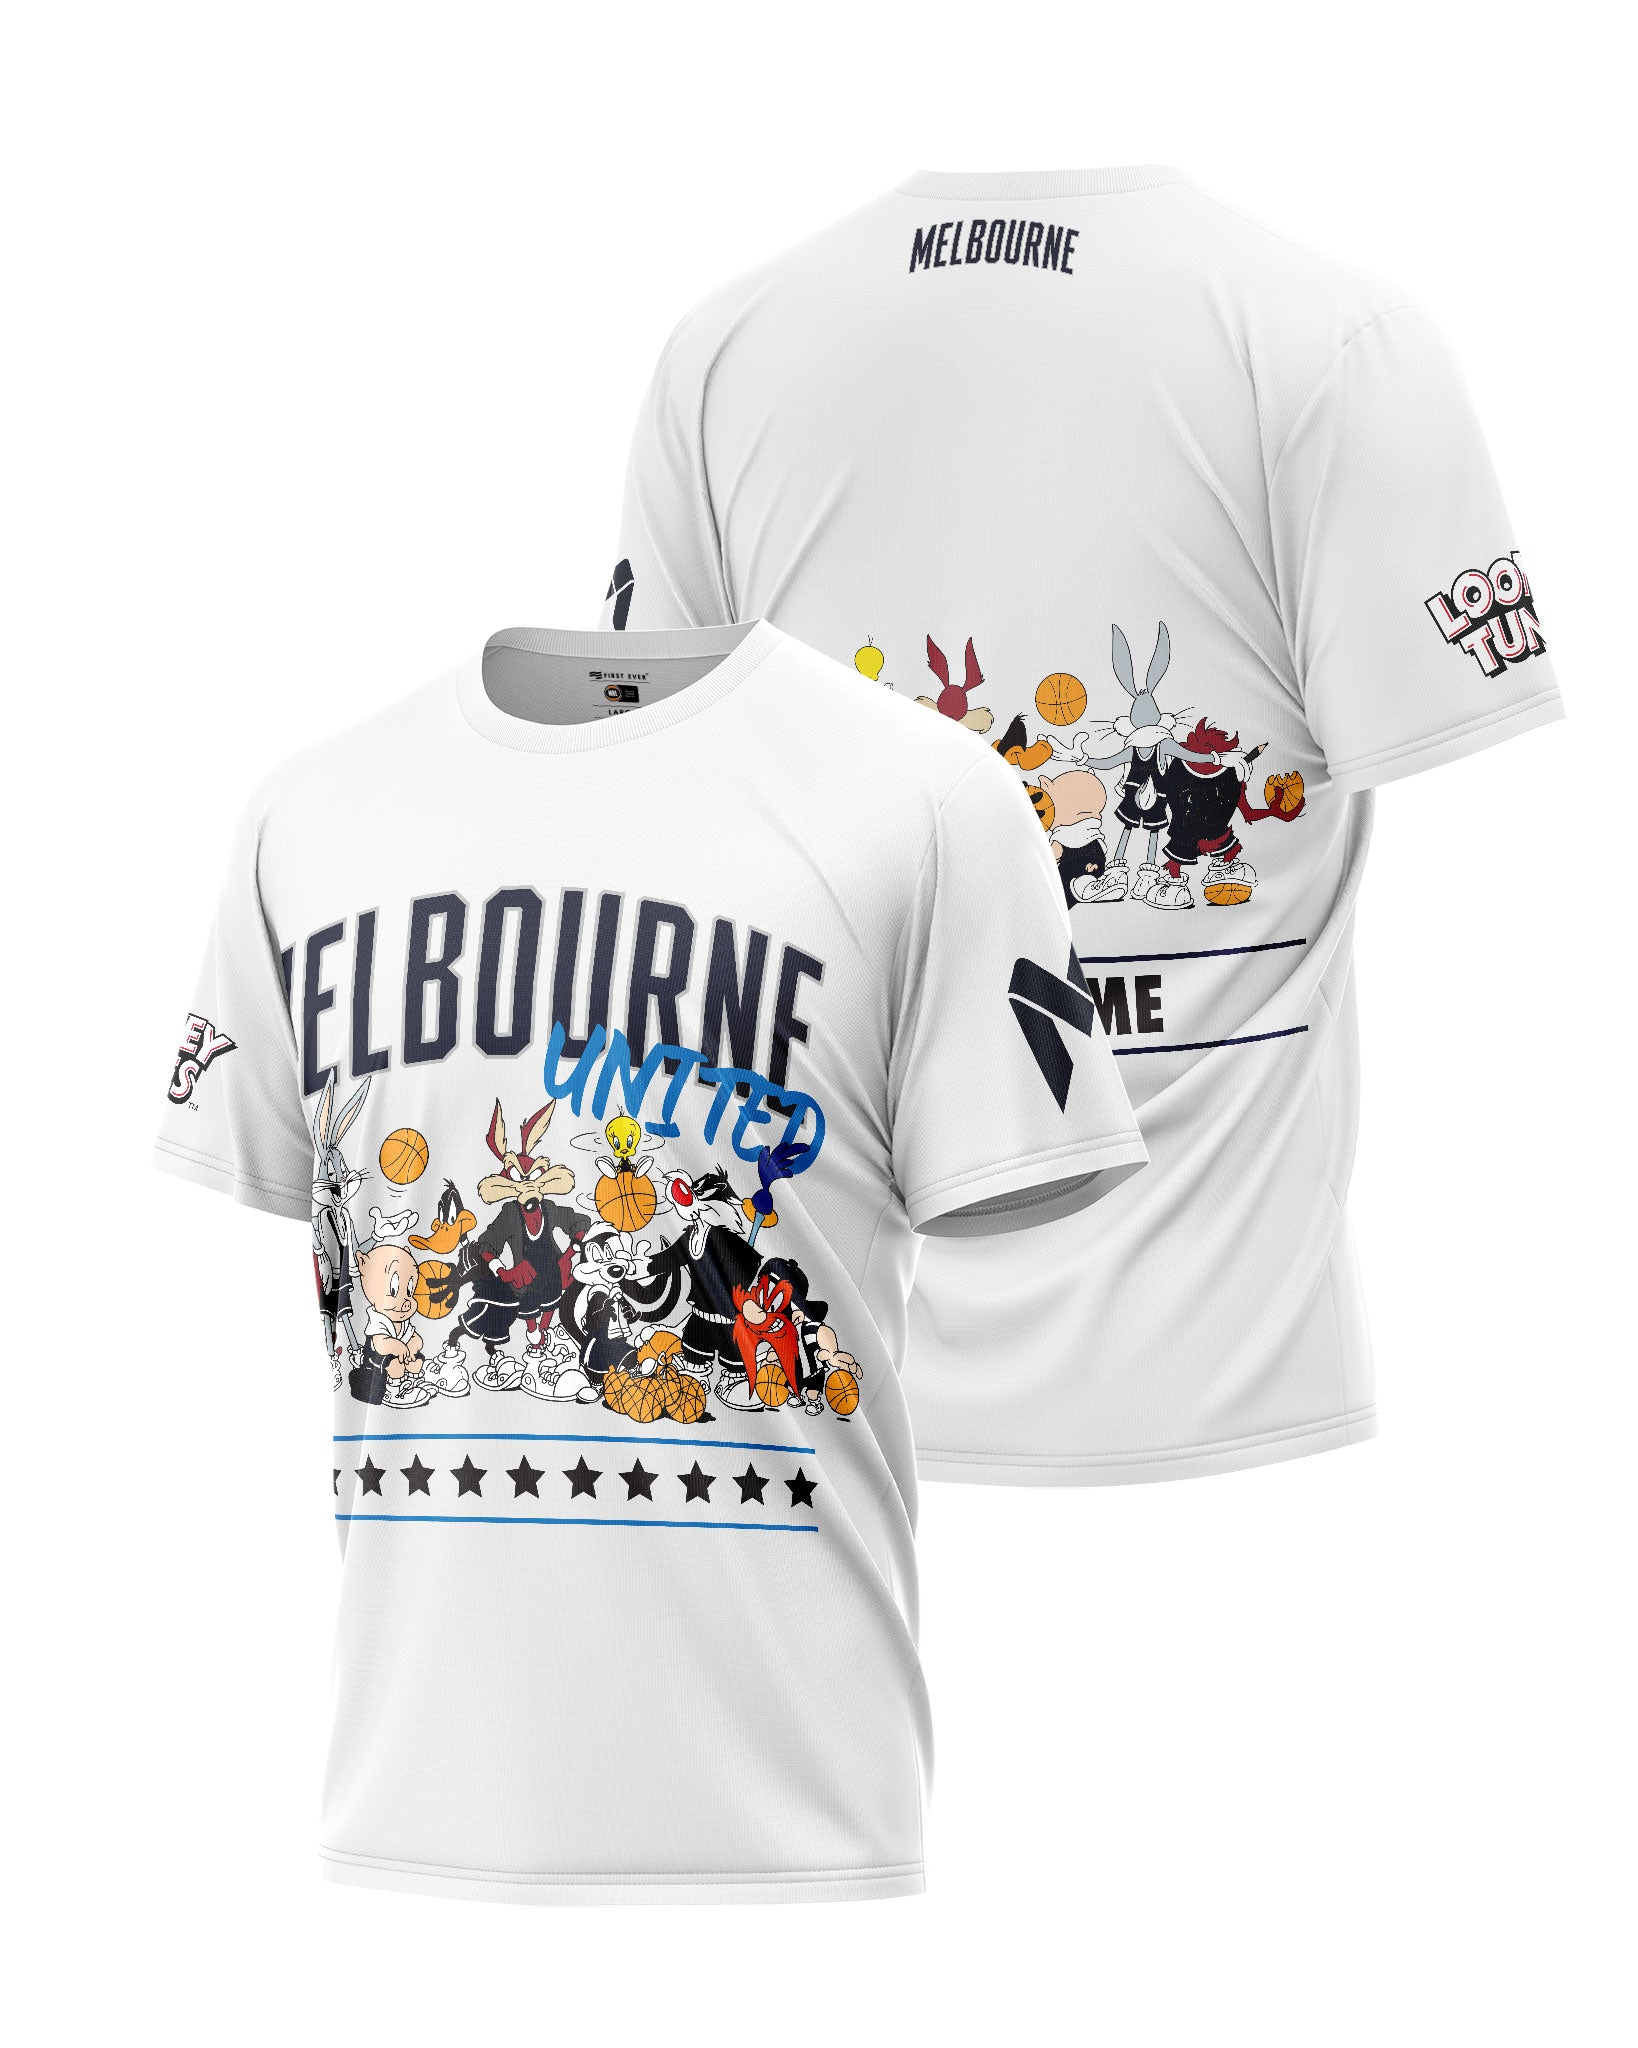 Melbourne United 20/21 Looney Tunes Squad Tee - Personalised